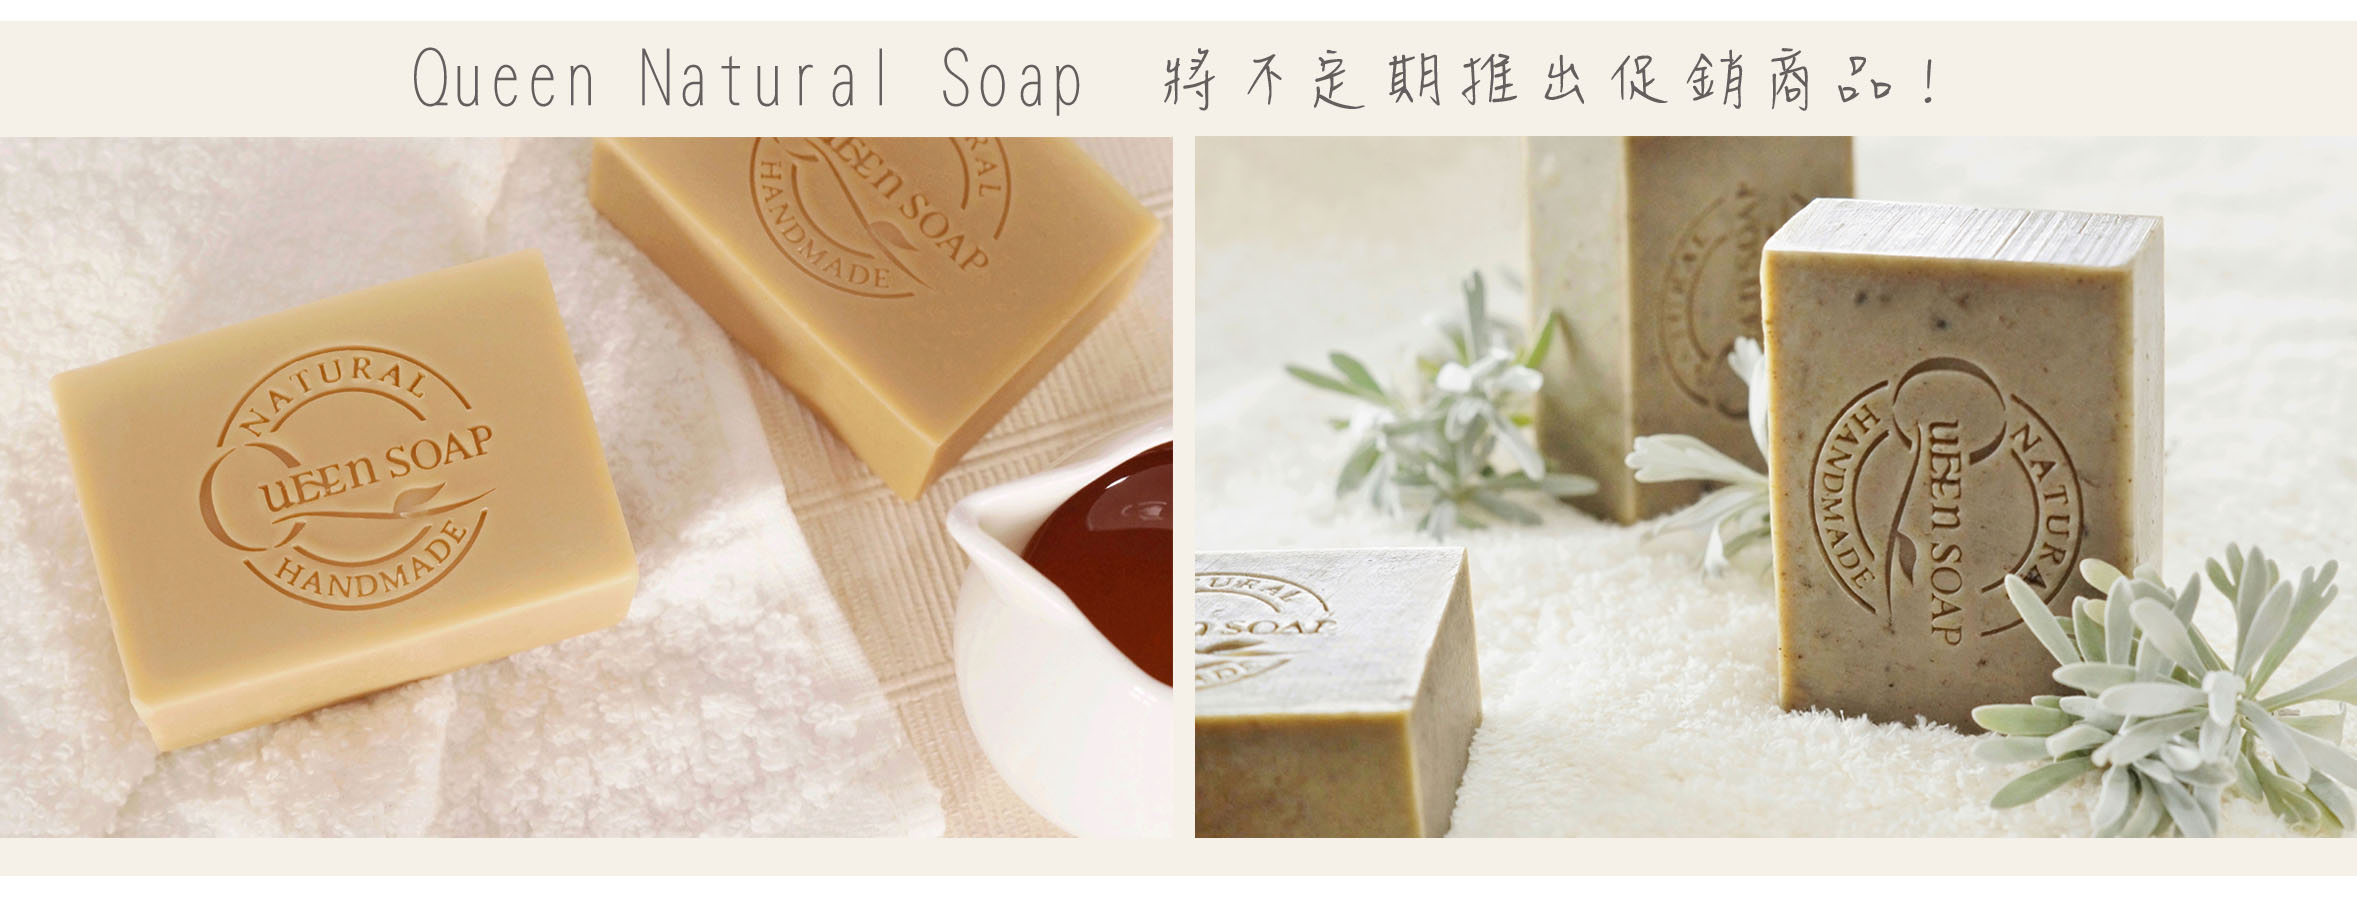 Queen Soap 母乳 材料  獨特 配方.jpg